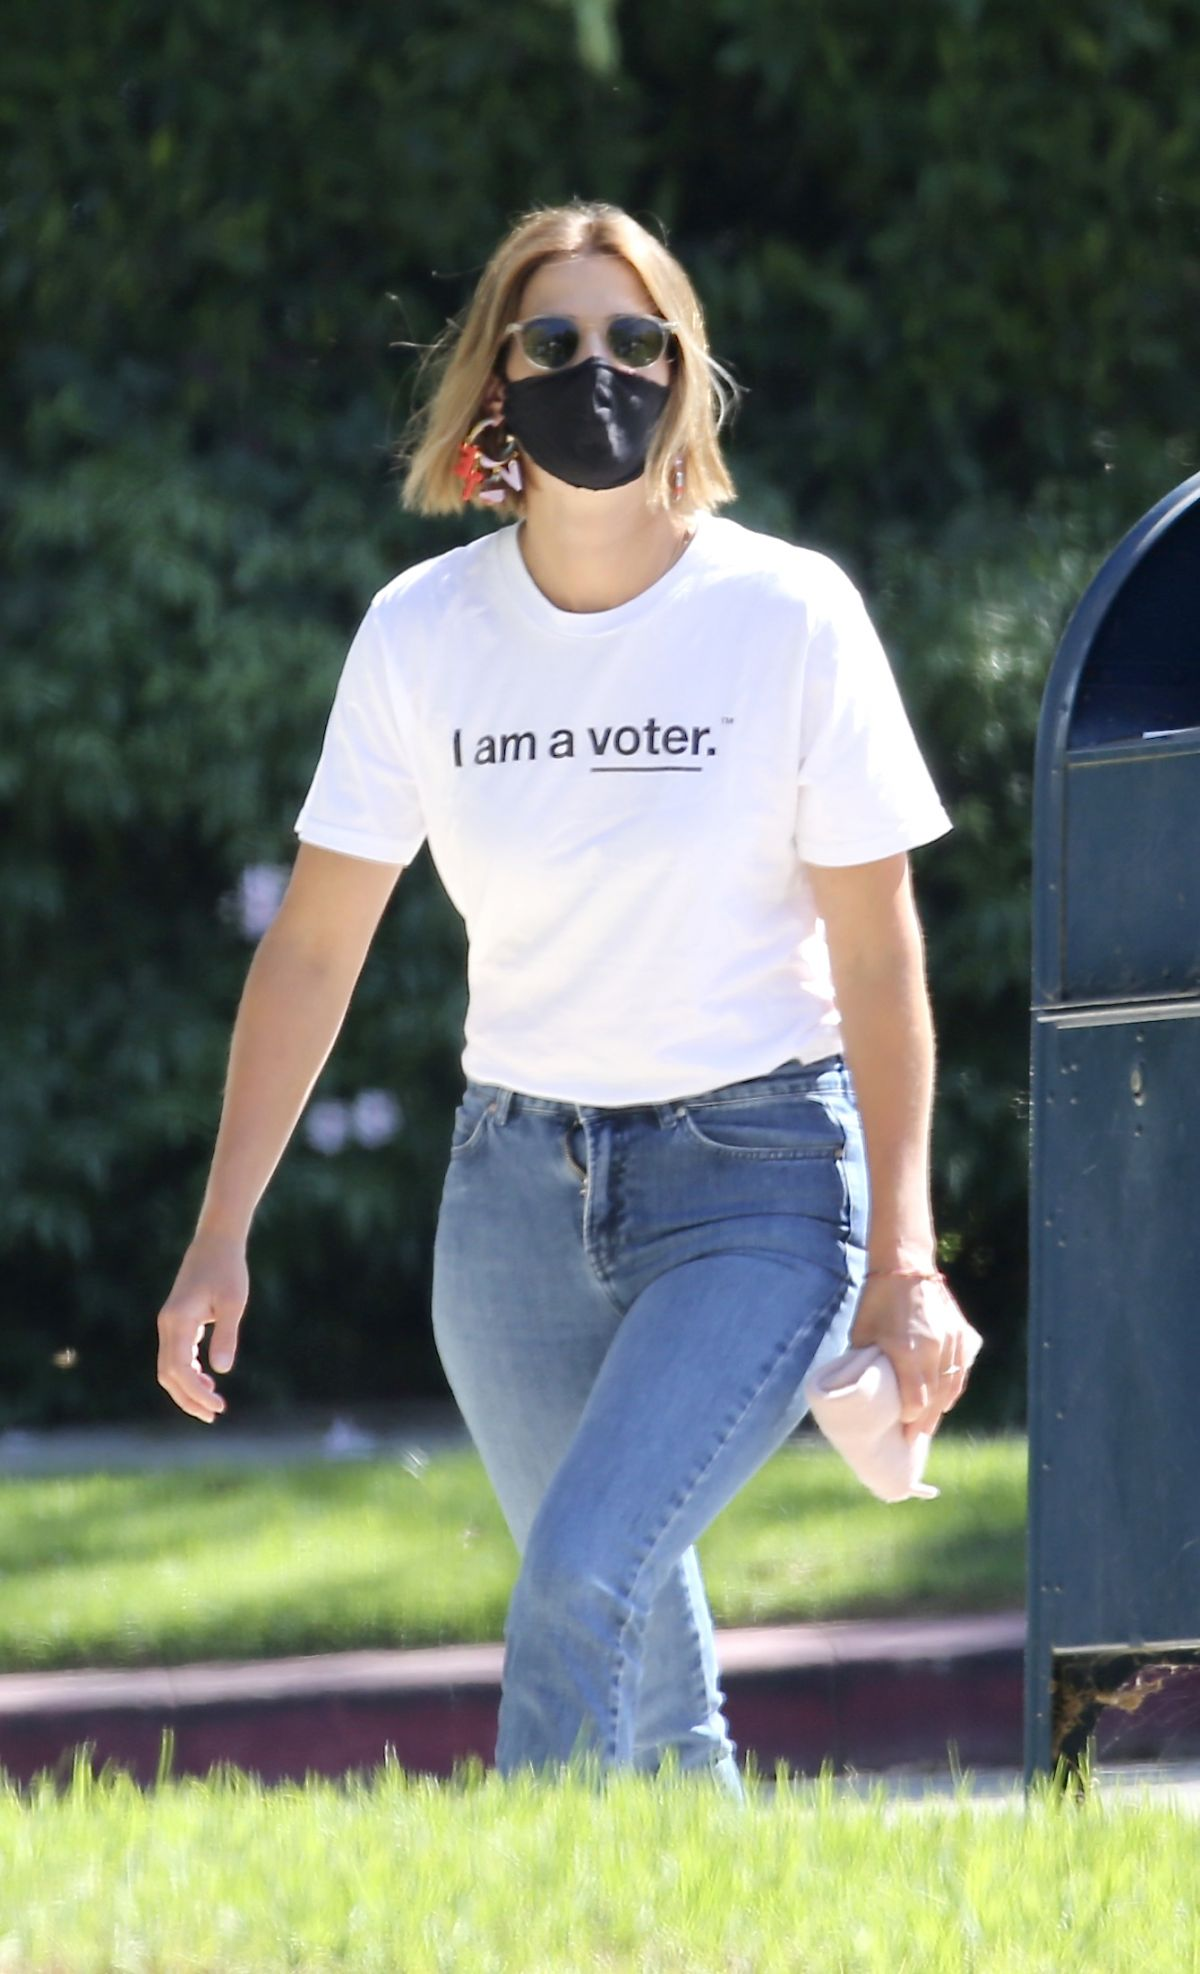 Cobie Smulders Out Voting In Los Angeles 10 14 2020 Hawtcelebs